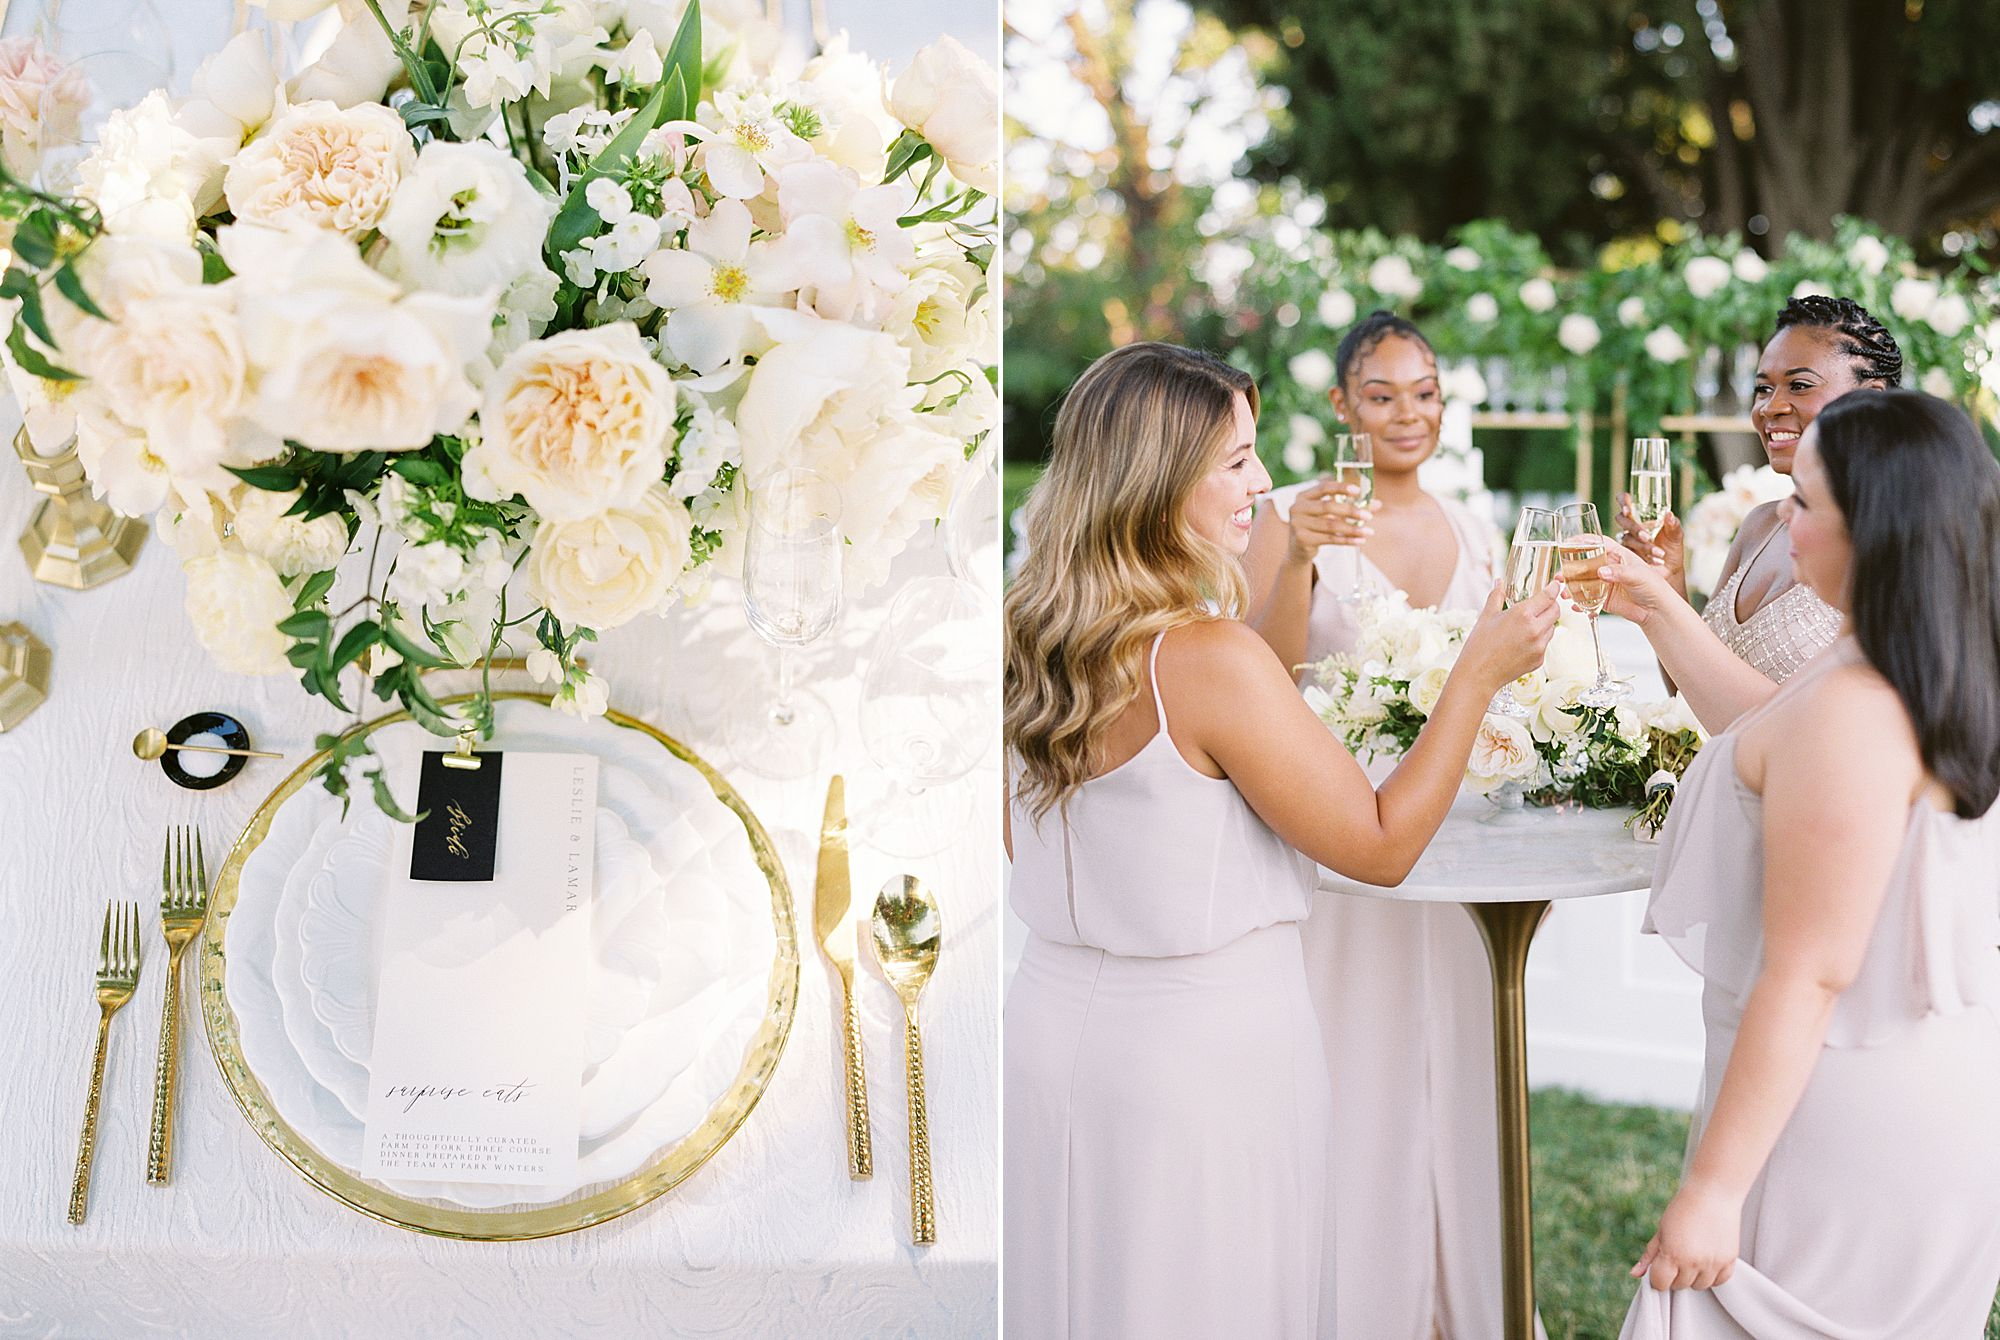 Park Winters Micro-Wedding Inspiration on Style Me Pretty - Stephanie Teague Events - Ashley Baumgartner - Park Winters Wedding - Black Tie Wedding - Micro-Wedding Sacramento Photographer_0043.jpg